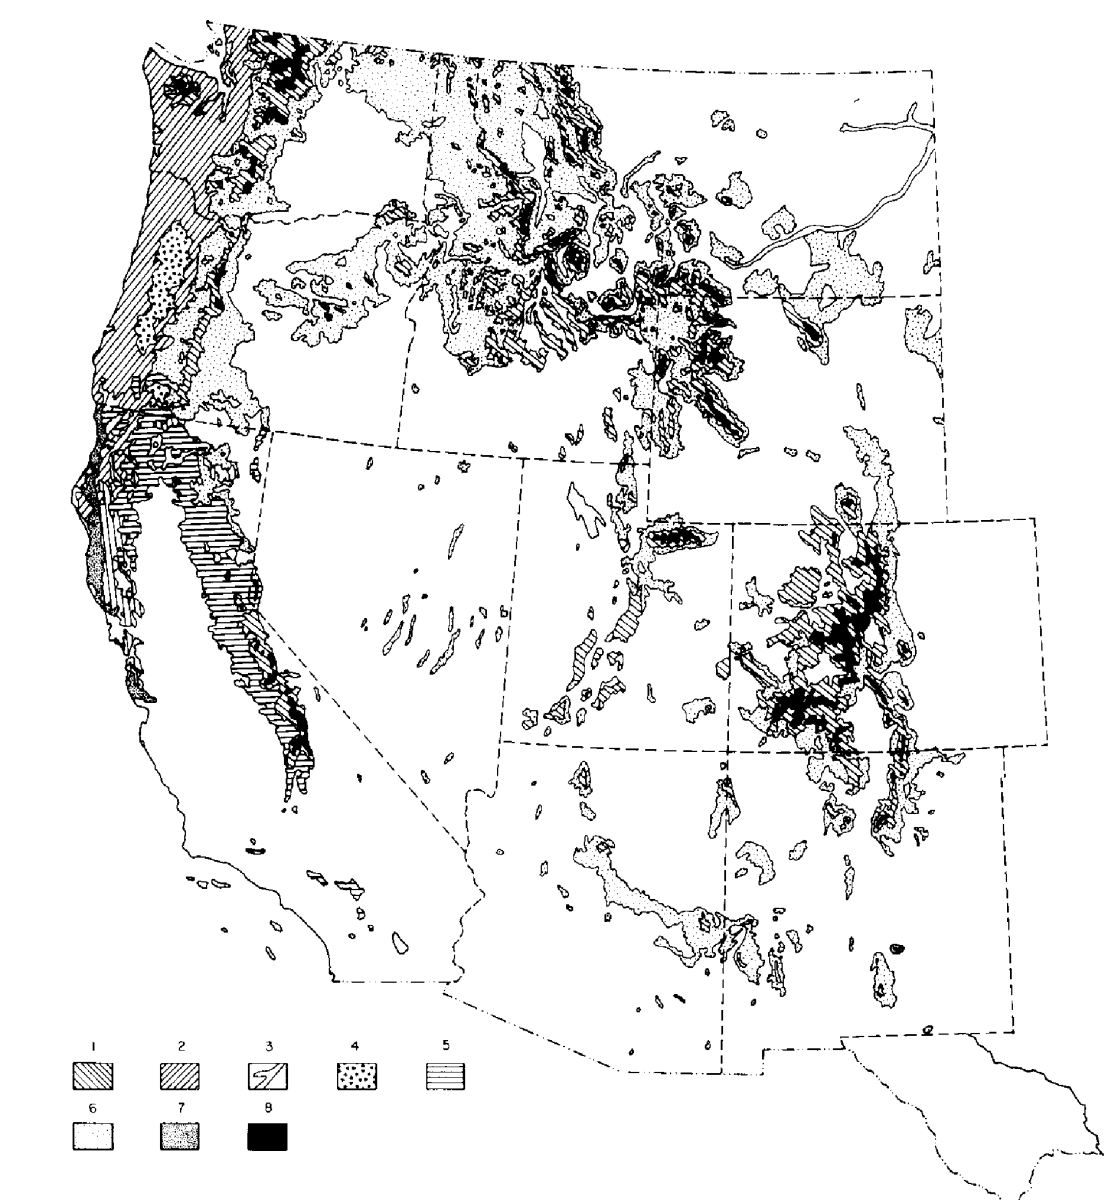 California during the last Glacial Maximum